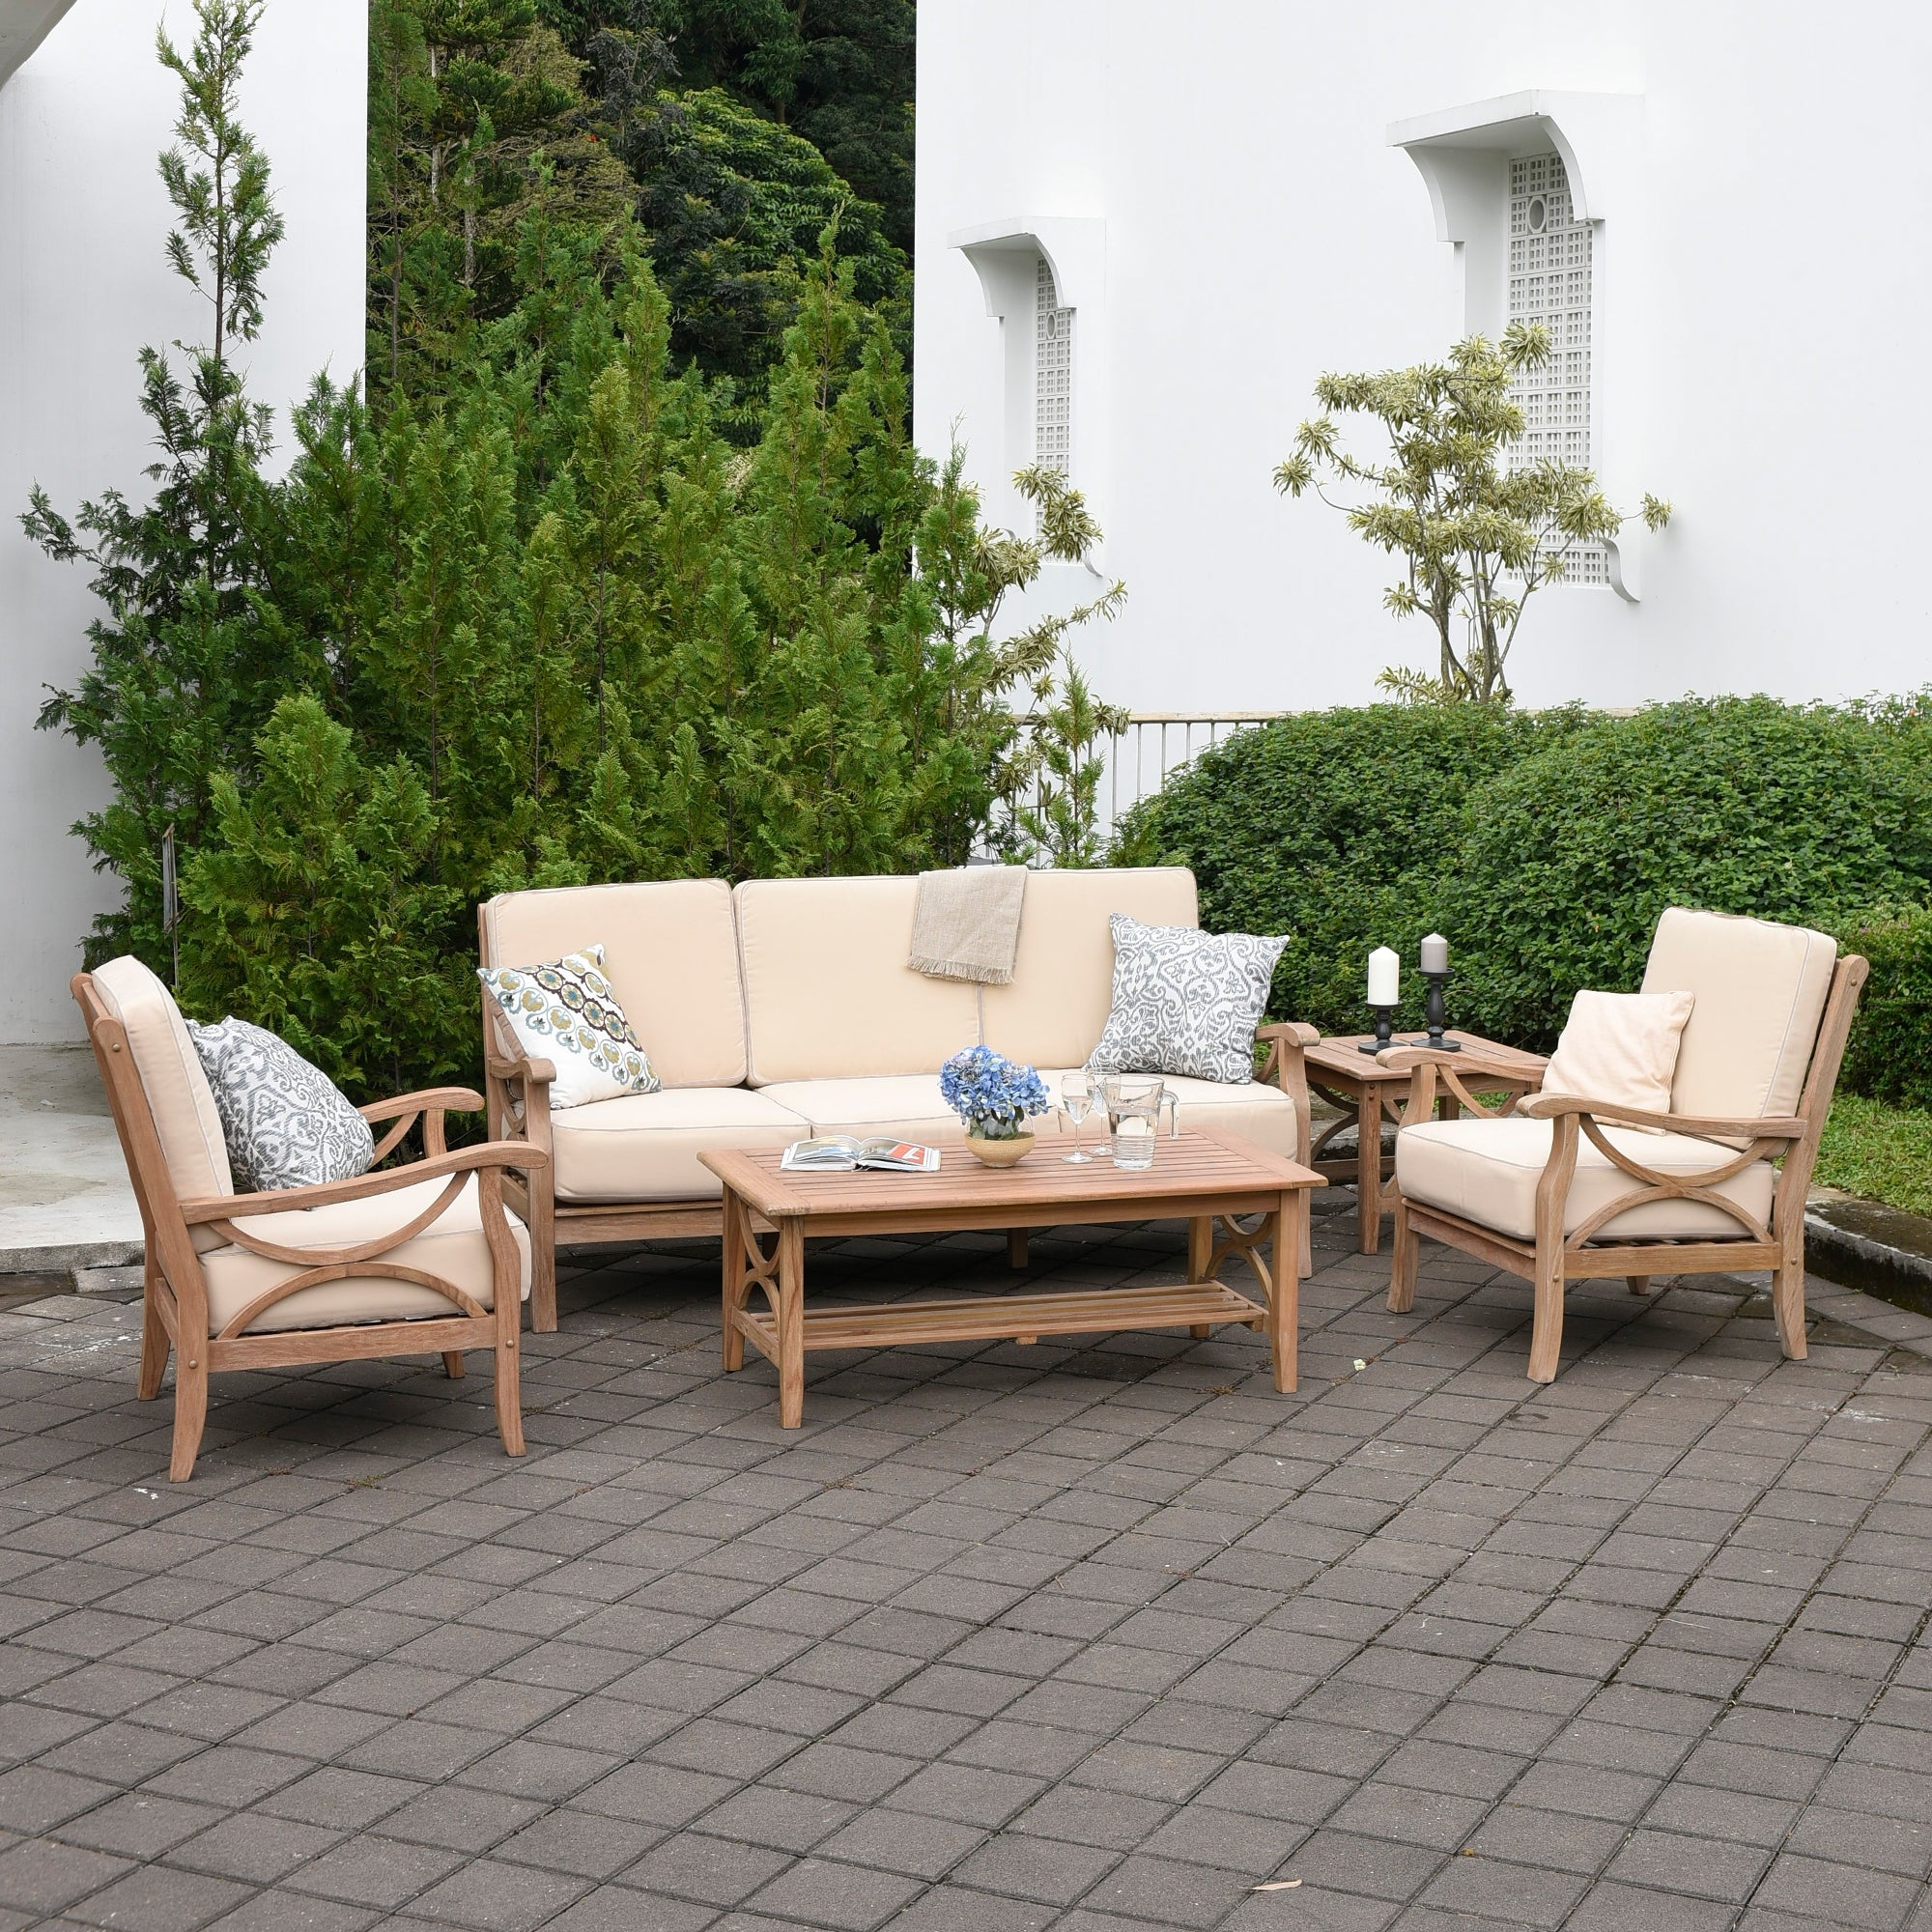 Delray 5 Piece Teak Patio Conversation Set By Havenside Home Overstock 27638969 Taupe Cushion